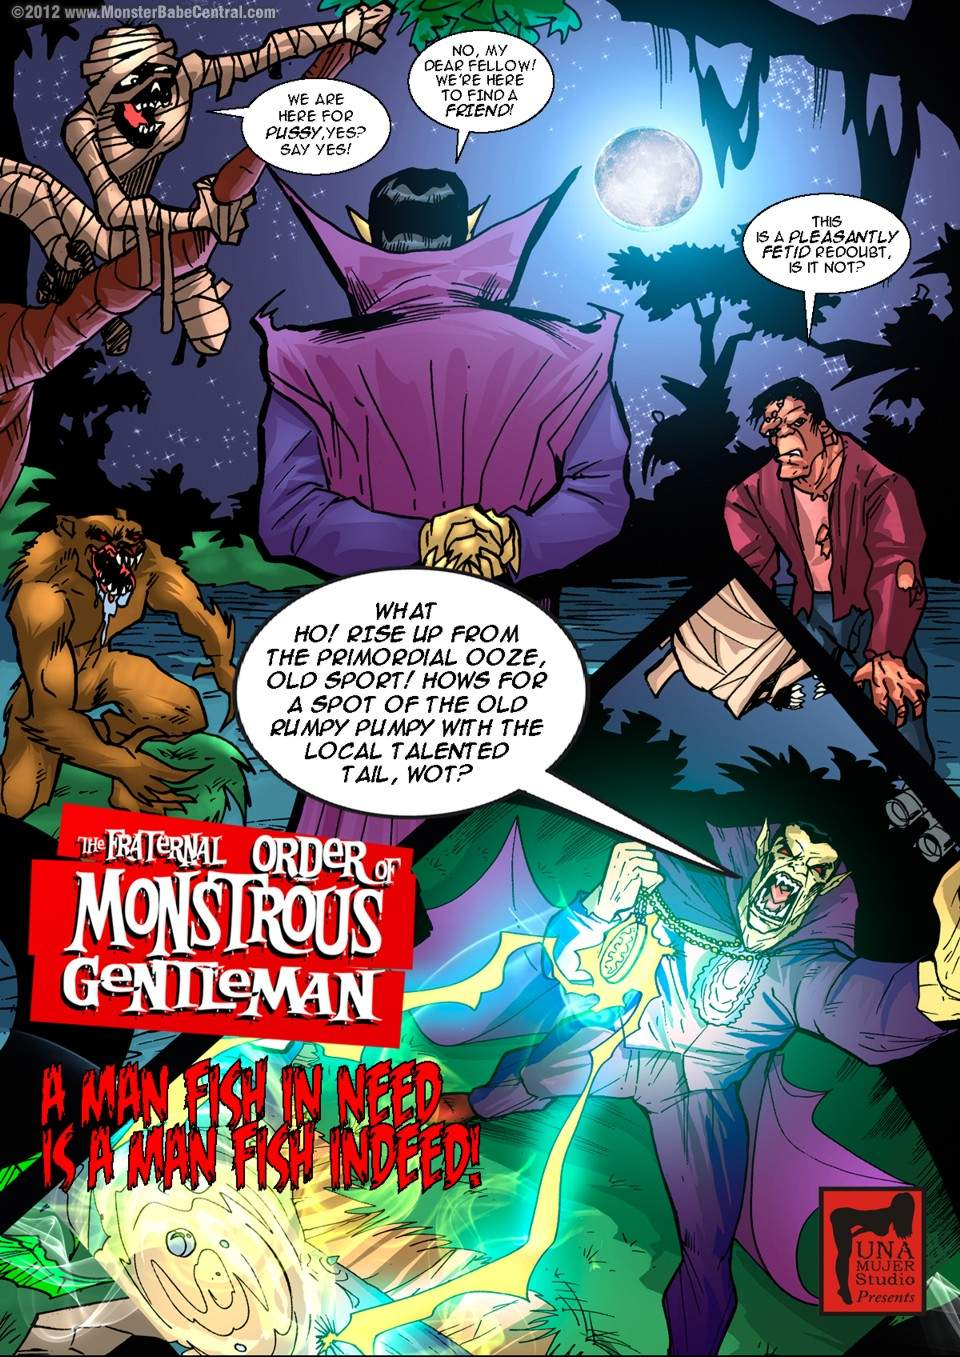 SureFap xxx porno Crossover - [MonsterBabeCentral] - The Fraternal Order of Monstrous Gentlemen! - Issue 5 - Swamp Monster